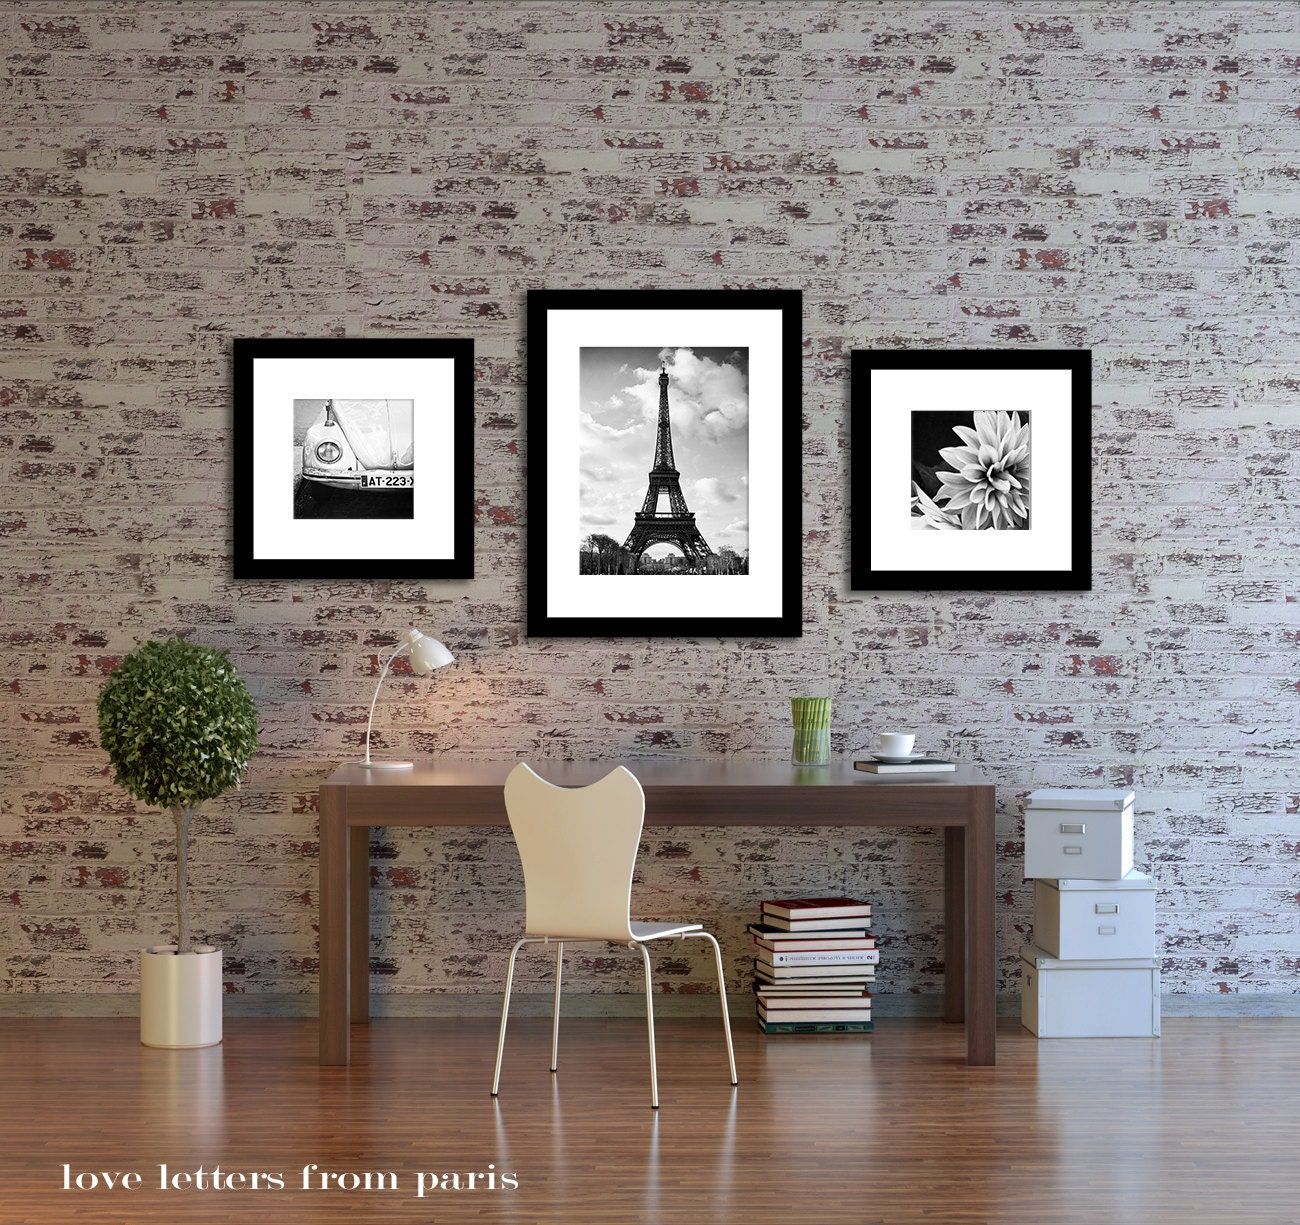 Paris photograph home decor paris wall art paris decor - Wall paintings for home decoration ...